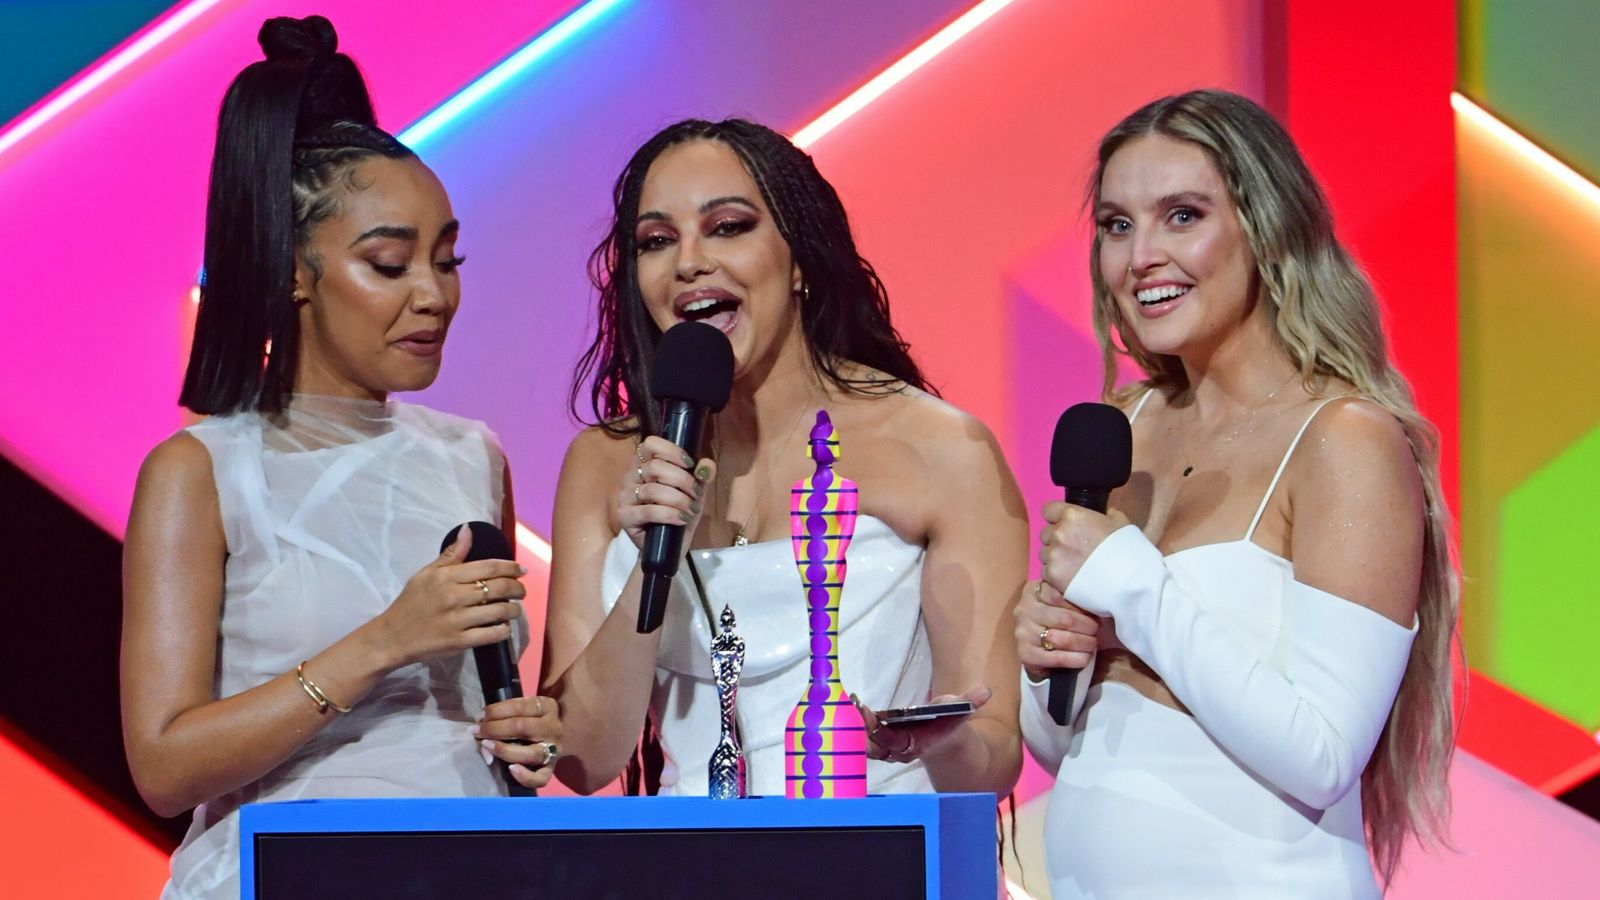 Little Mix: Jesy Nelson shows support for former bandmates after historic Brits win